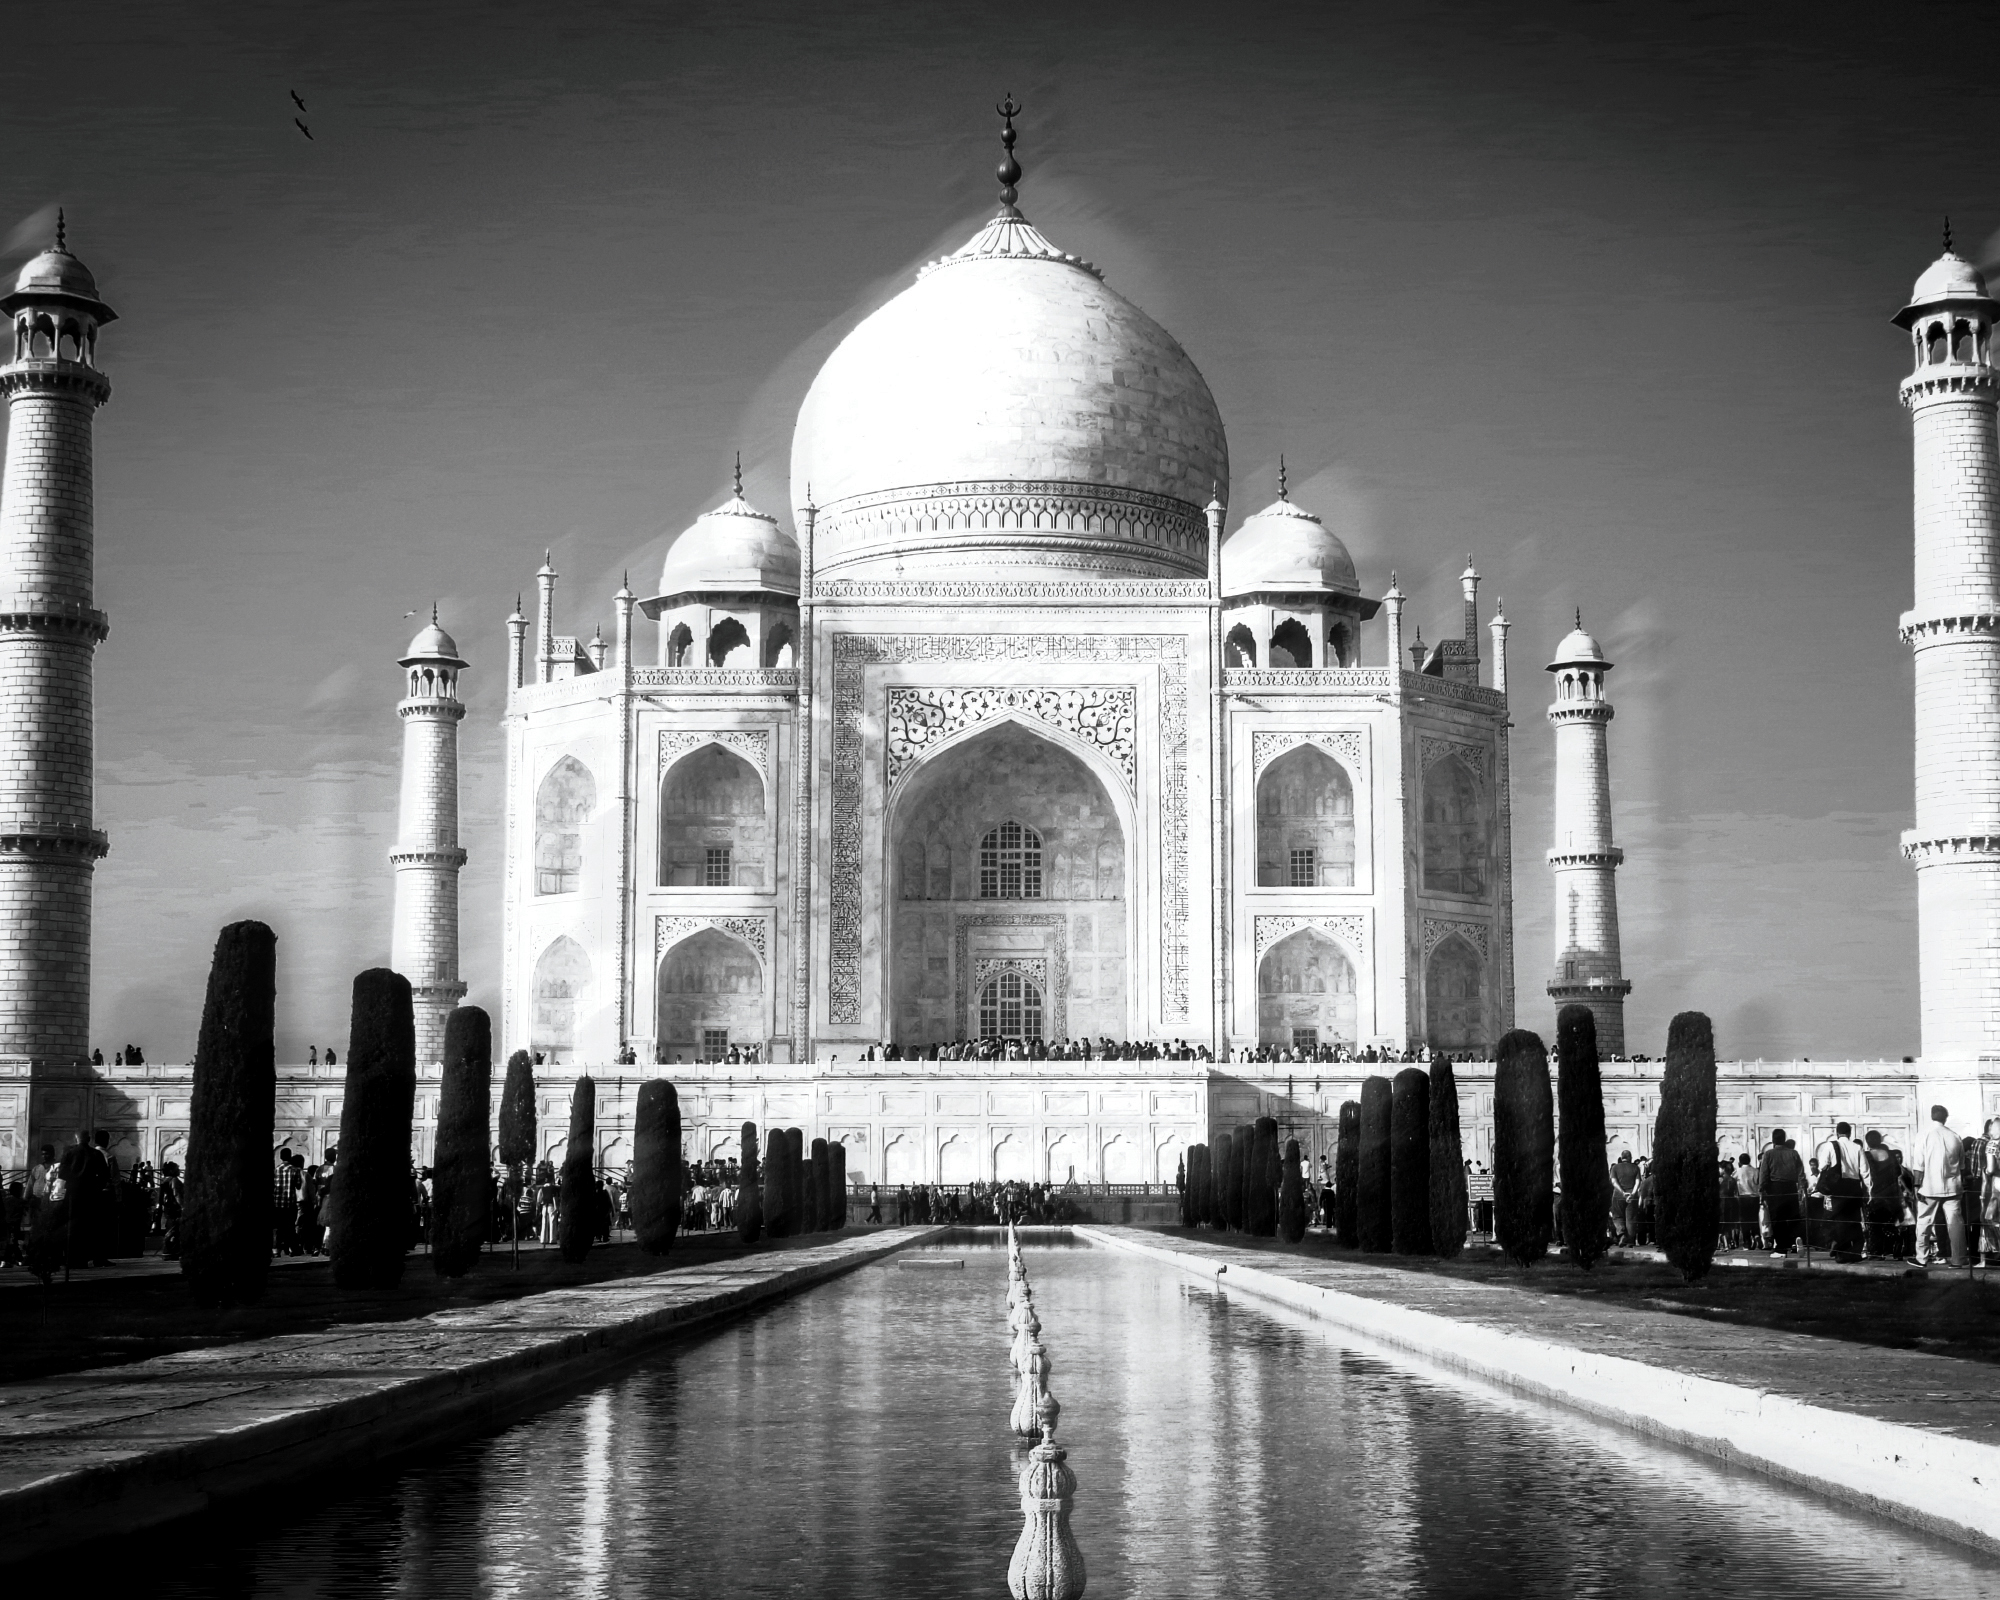 Black and white, abstract photograph of the Taj Mahal in Agra, India.